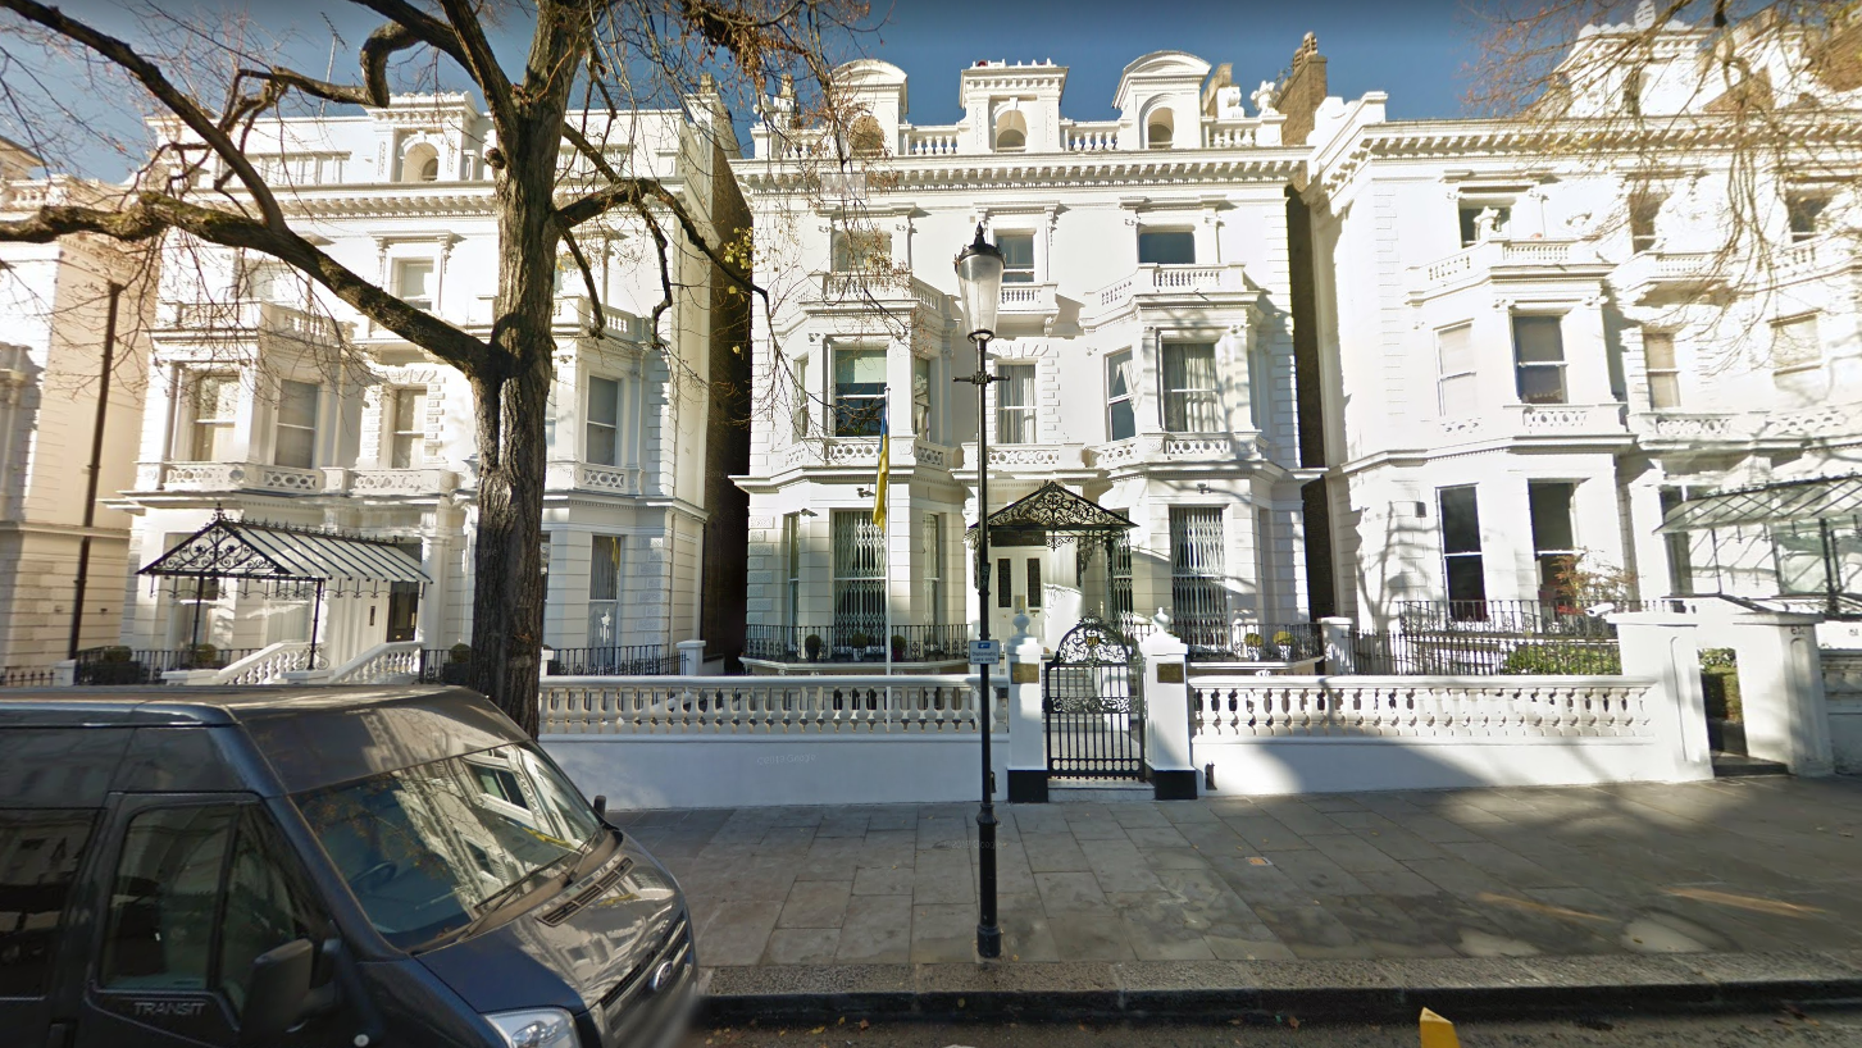 Westlake Legal Group maps-embassy Man arrested in London after 'deliberately' ramming into Ukrainian ambassador's car, forcing police to open fire Lukas Mikelionis fox-news/world/world-regions/united-kingdom fox-news/world/world-regions/europe fox-news/world/conflicts/ukraine fox news fnc/world fnc f524a319-5576-5304-bf03-94c6e172ce45 article